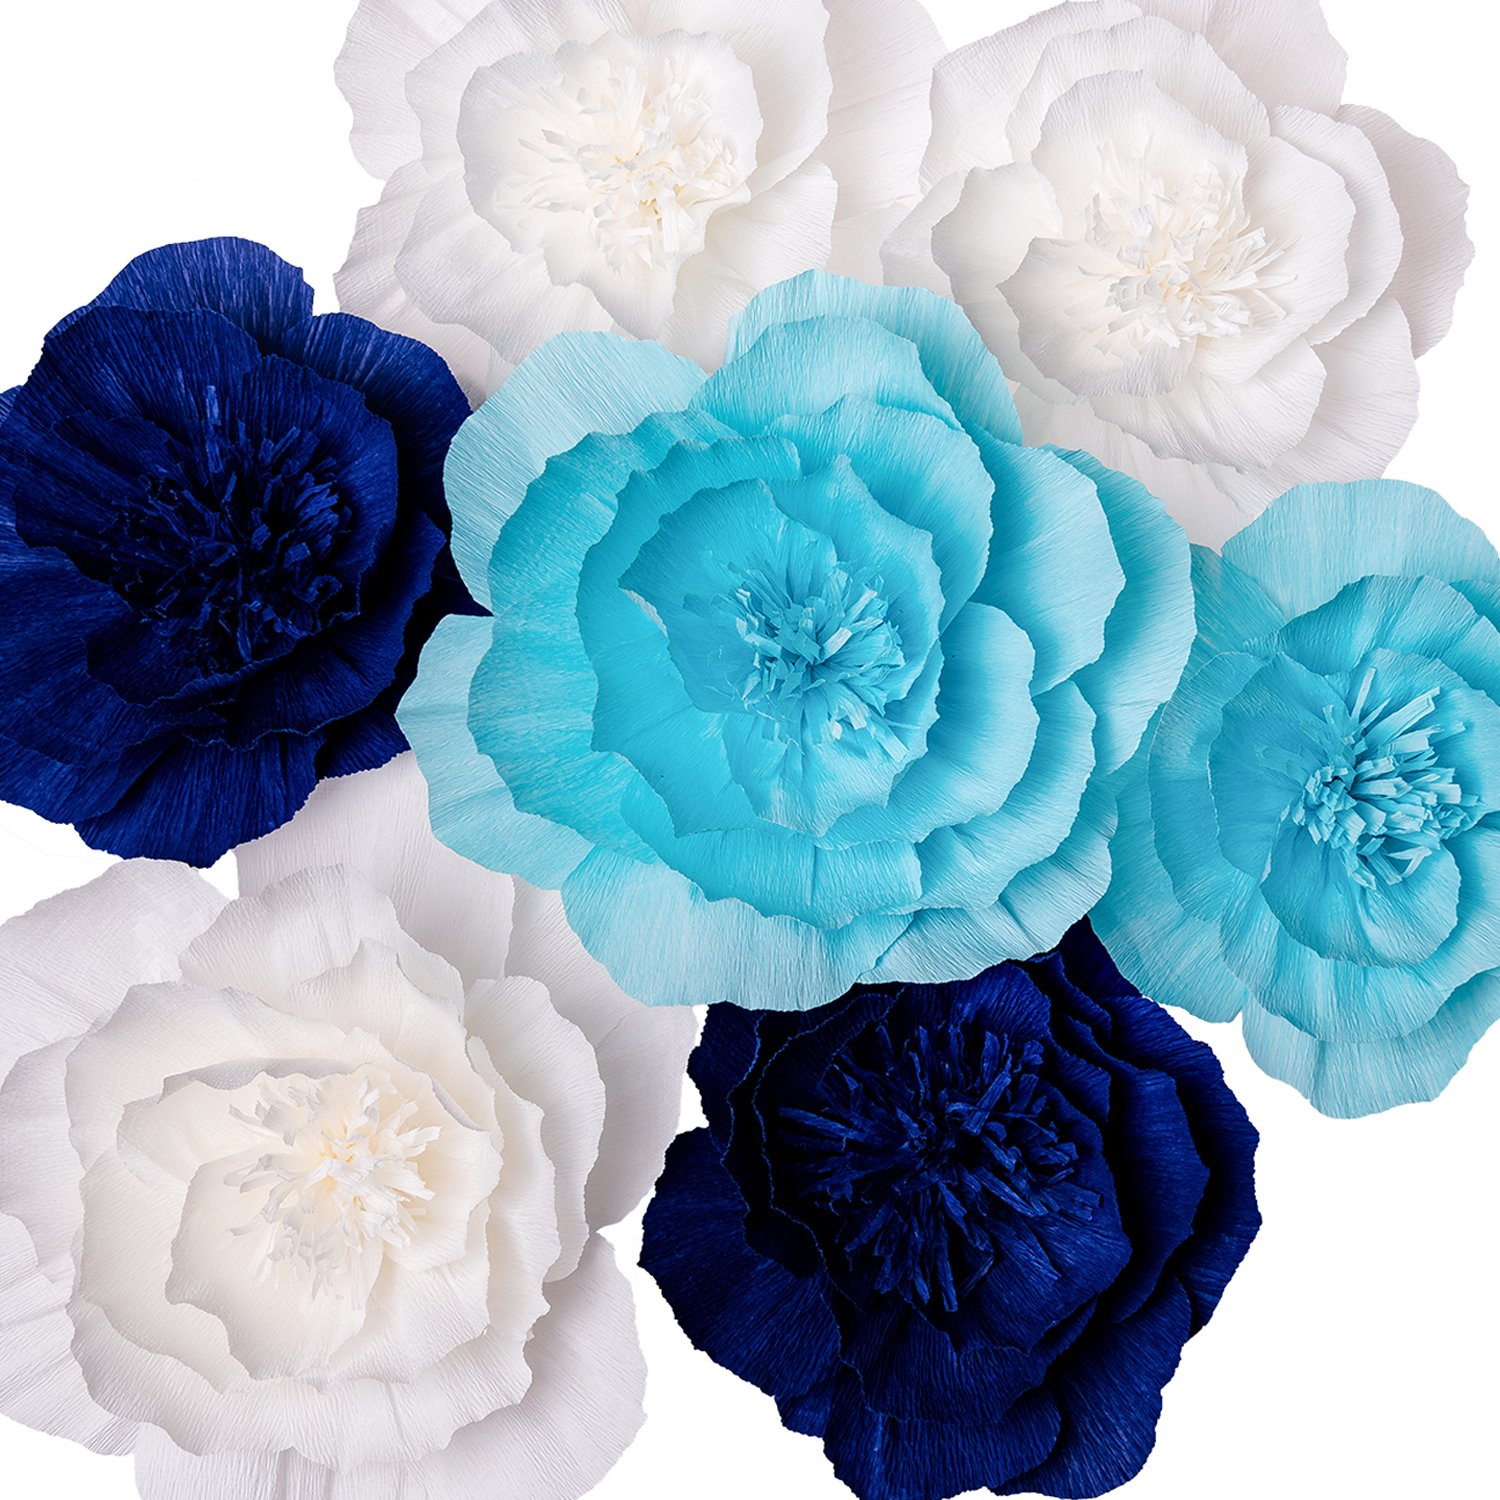 Paper Flower Decorations, Giant Paper Flowers (Navy Blue, Light Blue, White, Set of 7), Large Paper Flowers, Crepe Paper Flowers for Wedding, Nursery Wall Decorations, Baby Shower, Bridal Shower